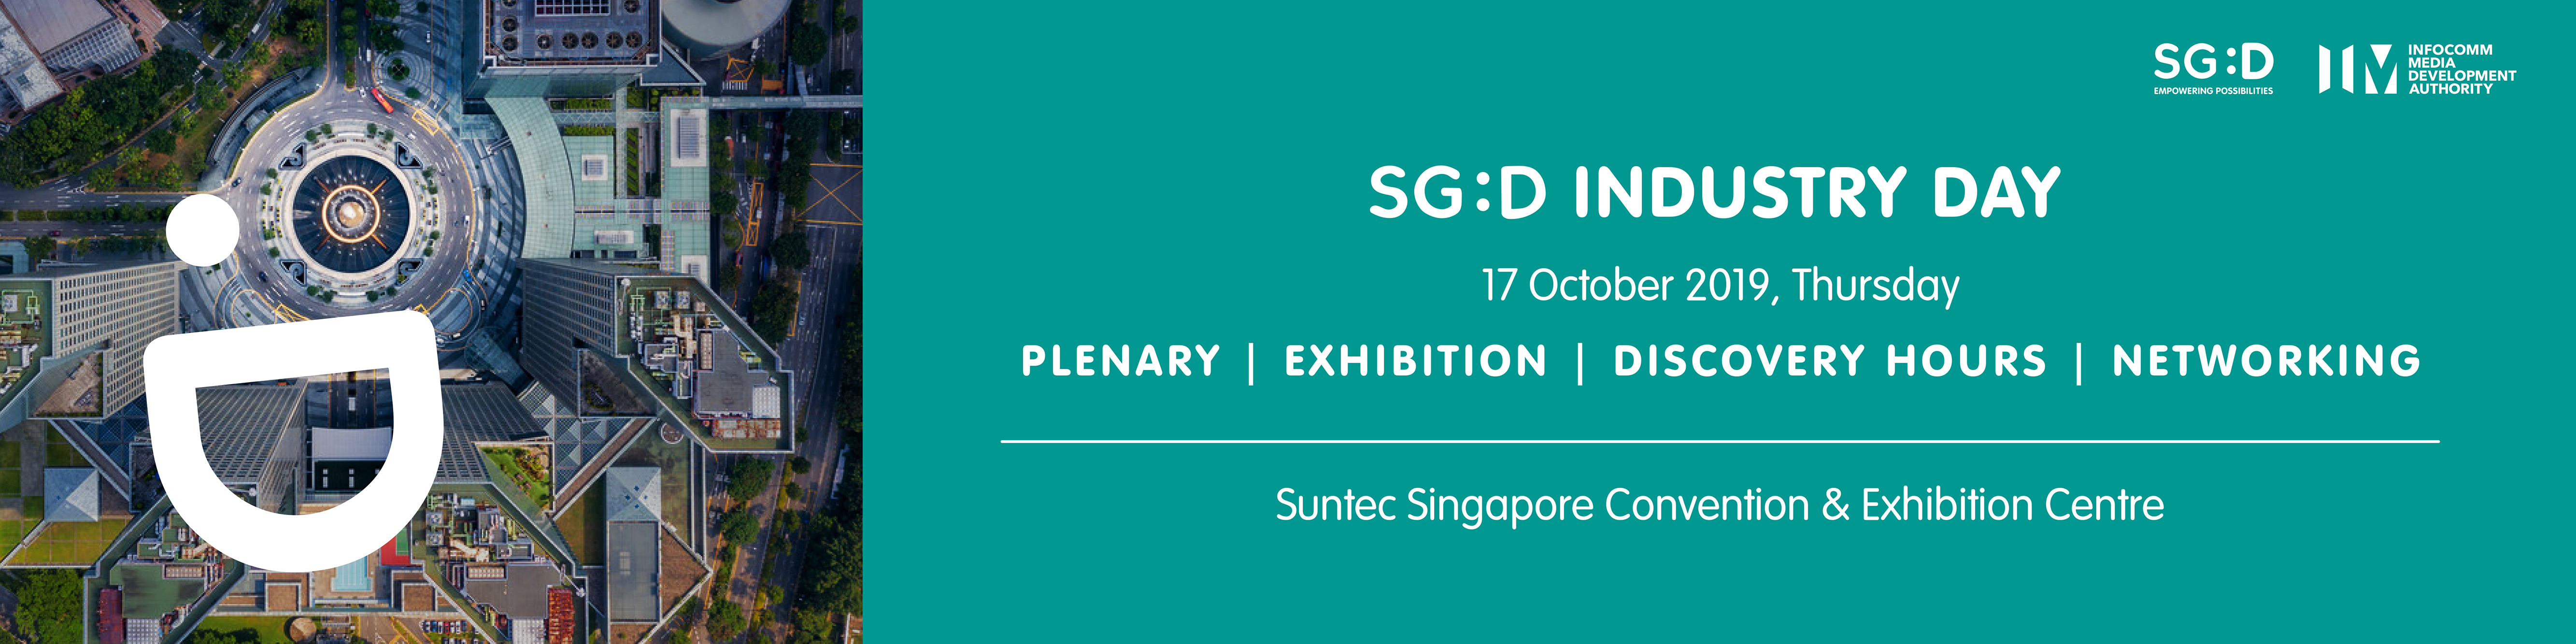 SG:D Industry Day 2019 Banner Image